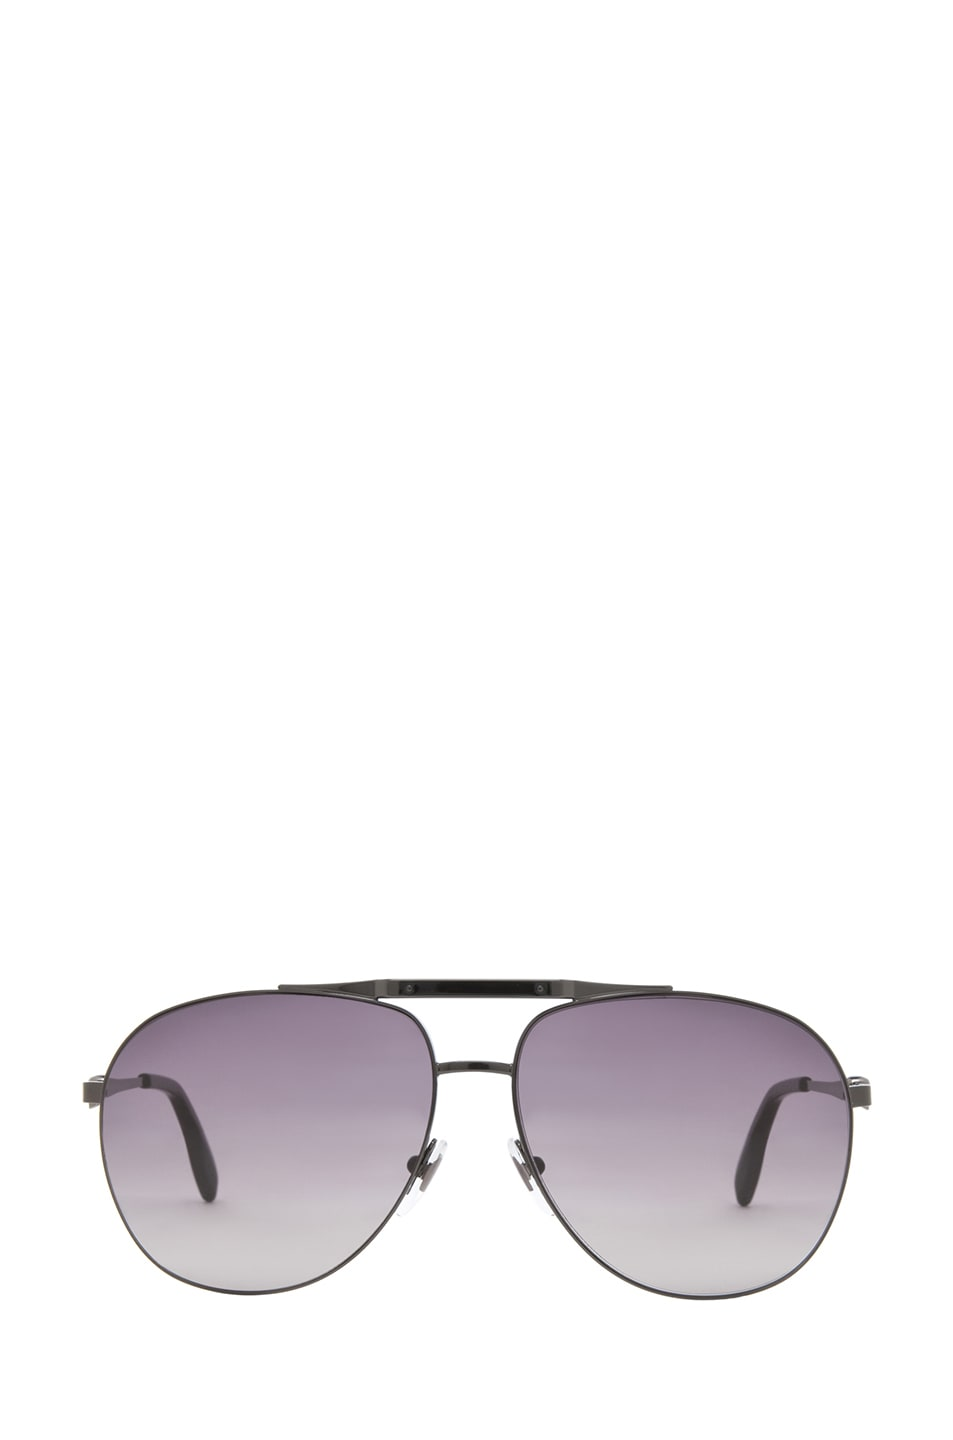 Image 1 of Alexander McQueen 4210 Sunglasses in Dark Ruthenium & Brown Gradient